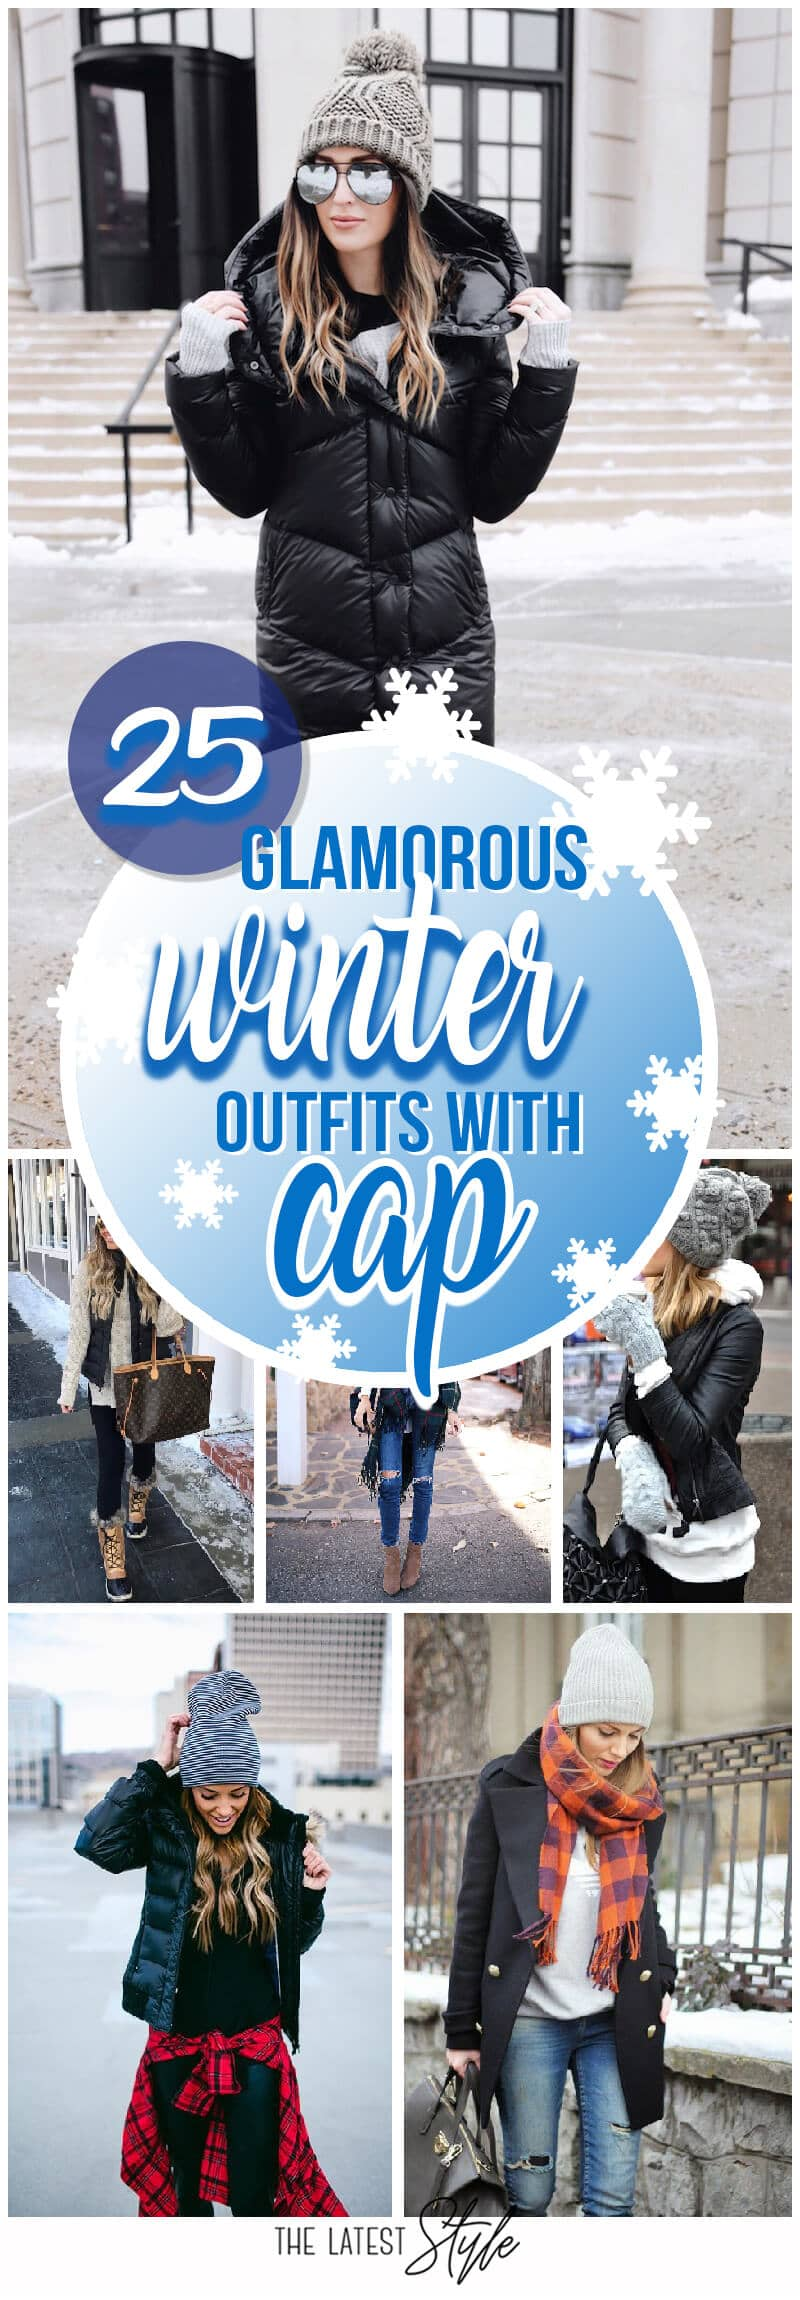 25 Winter Outfits With Cap that do More than Keep You Warm